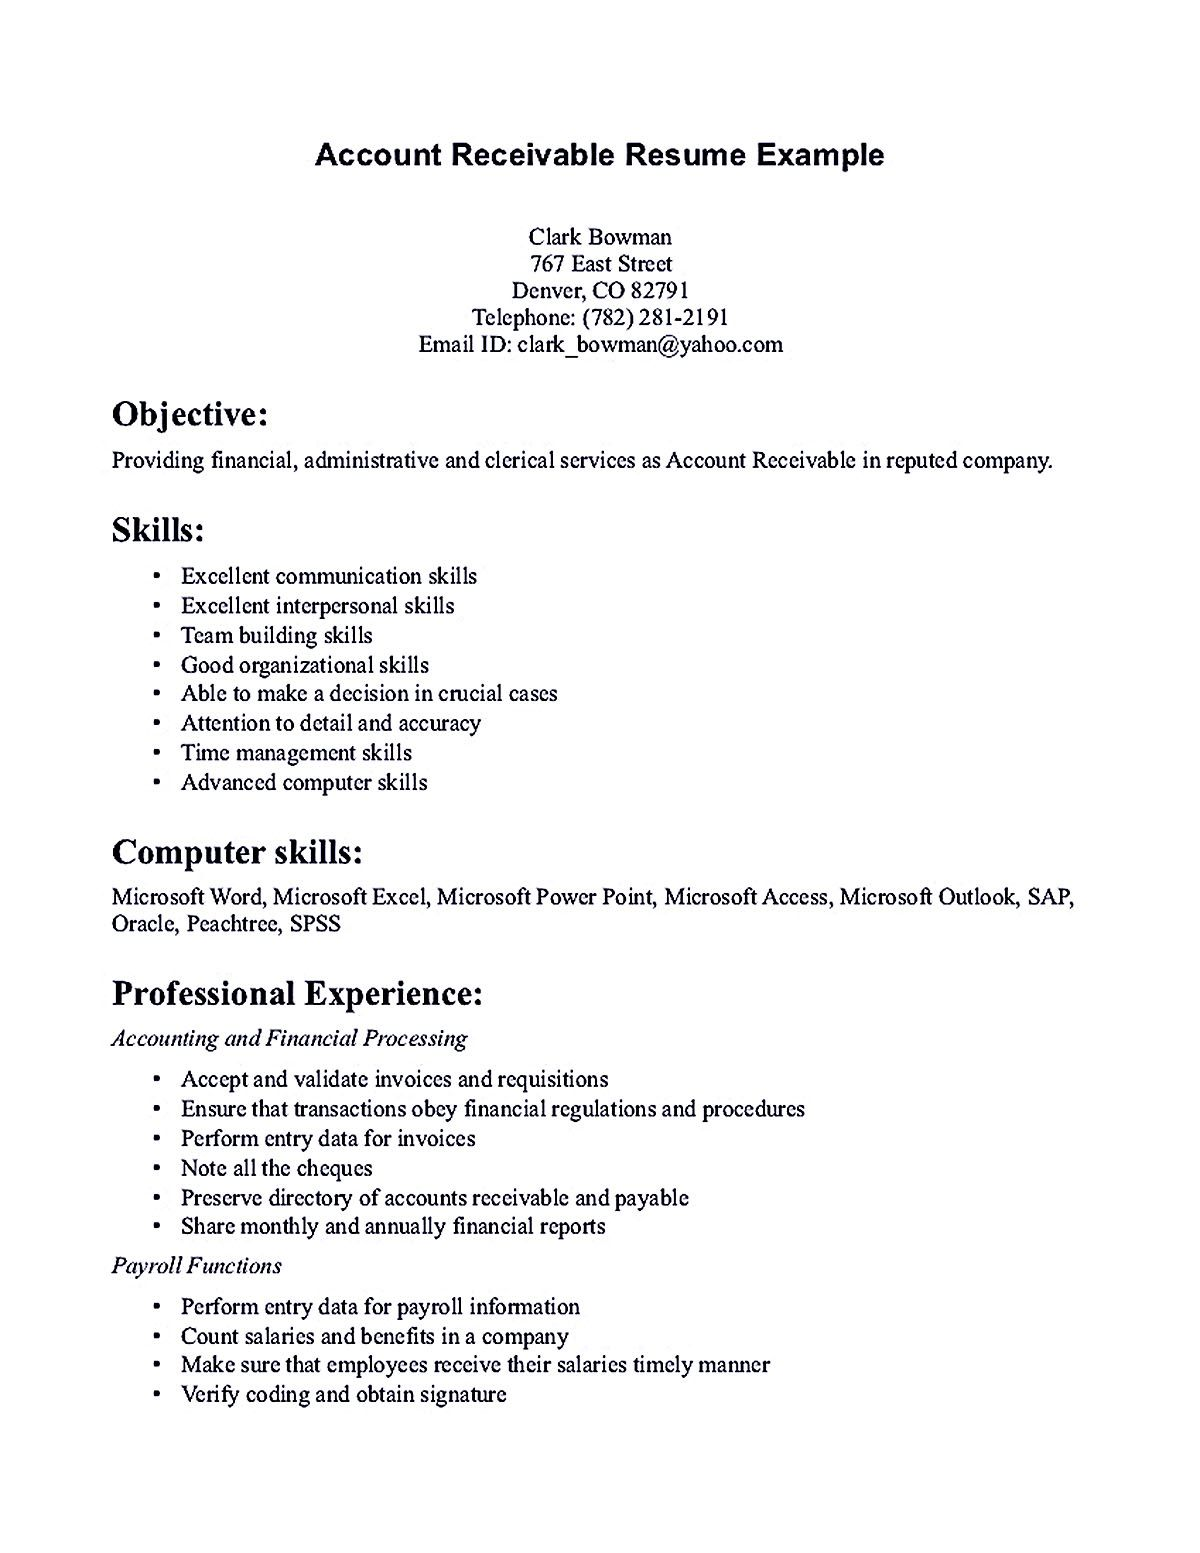 Sample Profile Summary For Resume Account Receivable Resume Shows Both Technical And Interpersonal .